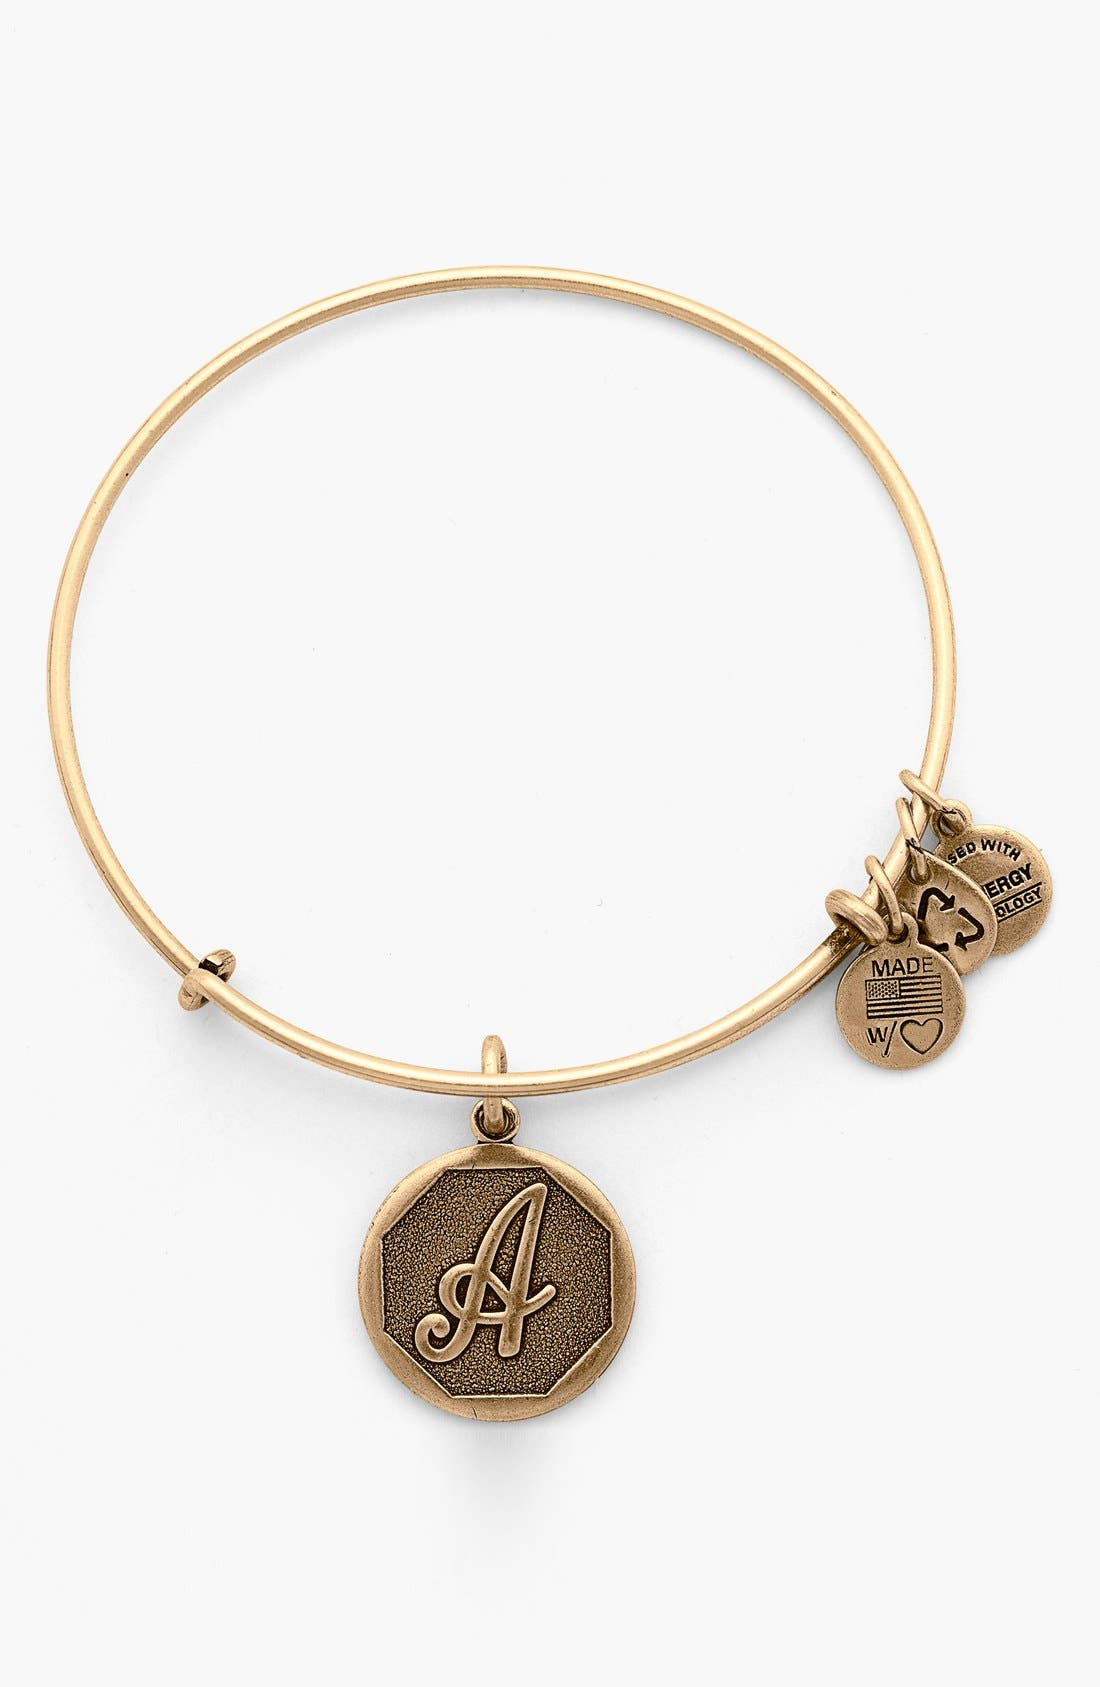 ALEX AND ANI 'Initial' Adjustable Wire Bangle, Main, color, 710